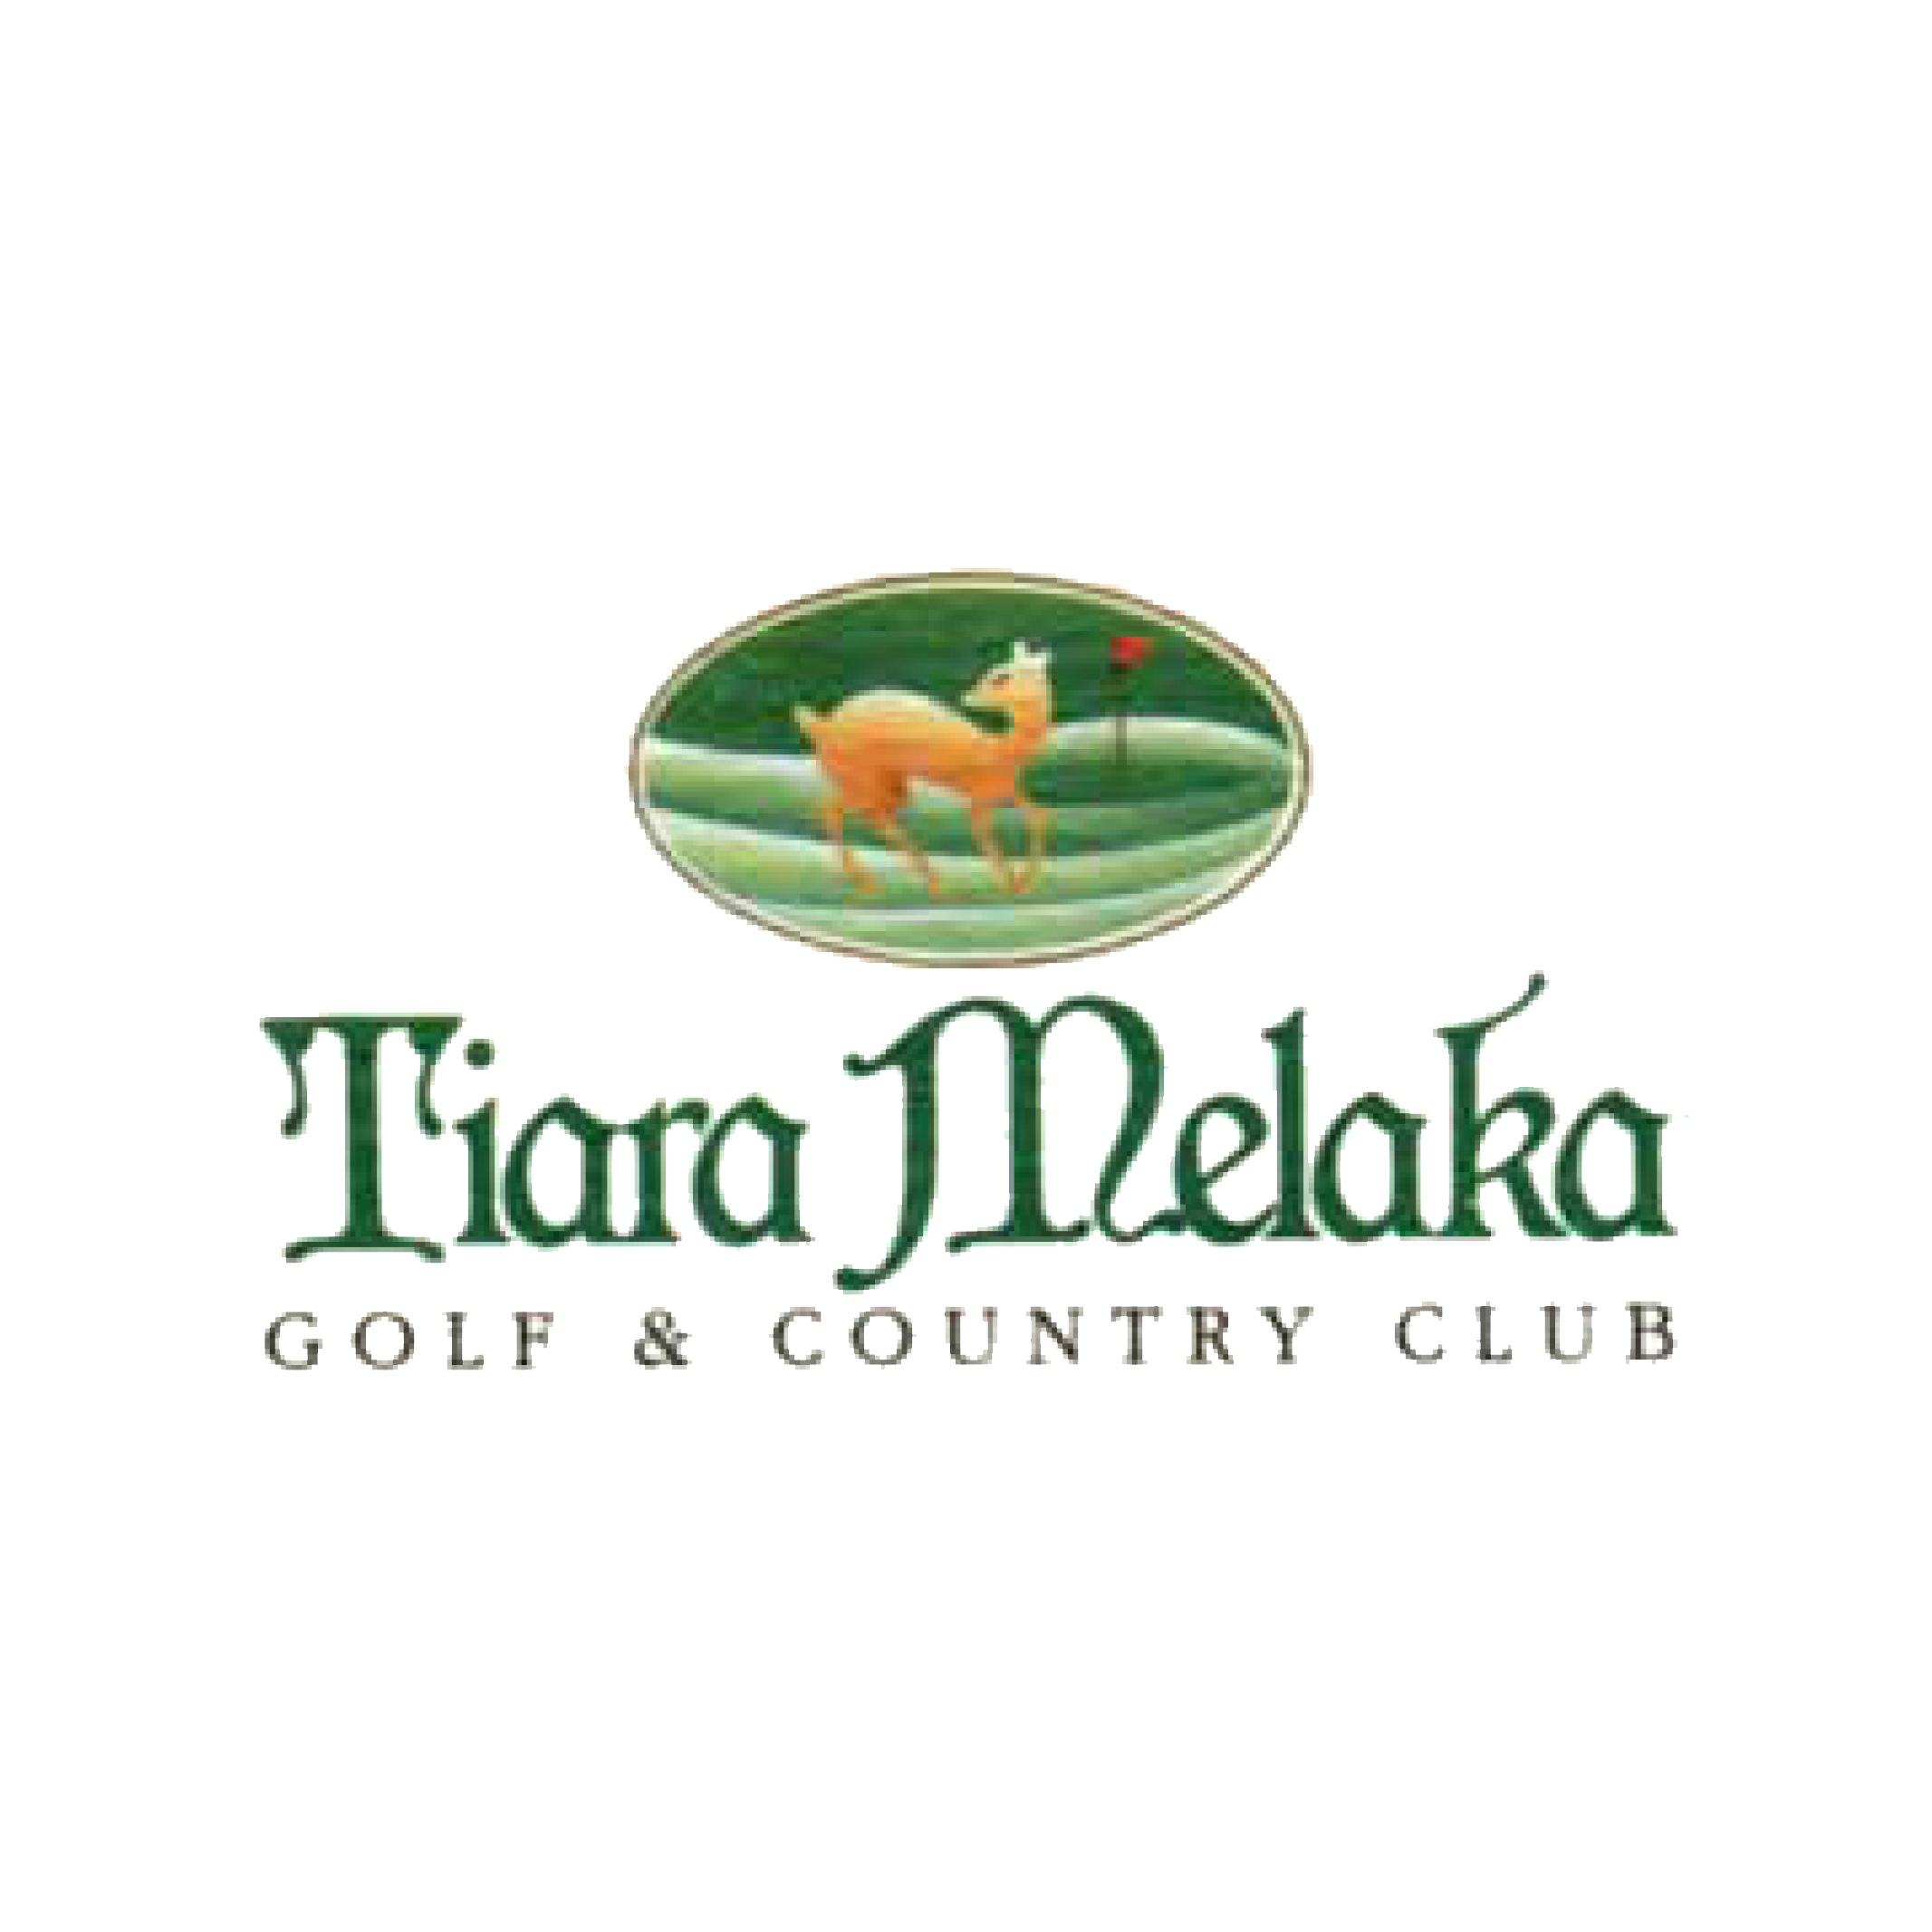 Tiara Melaka Golf & Country Club.png